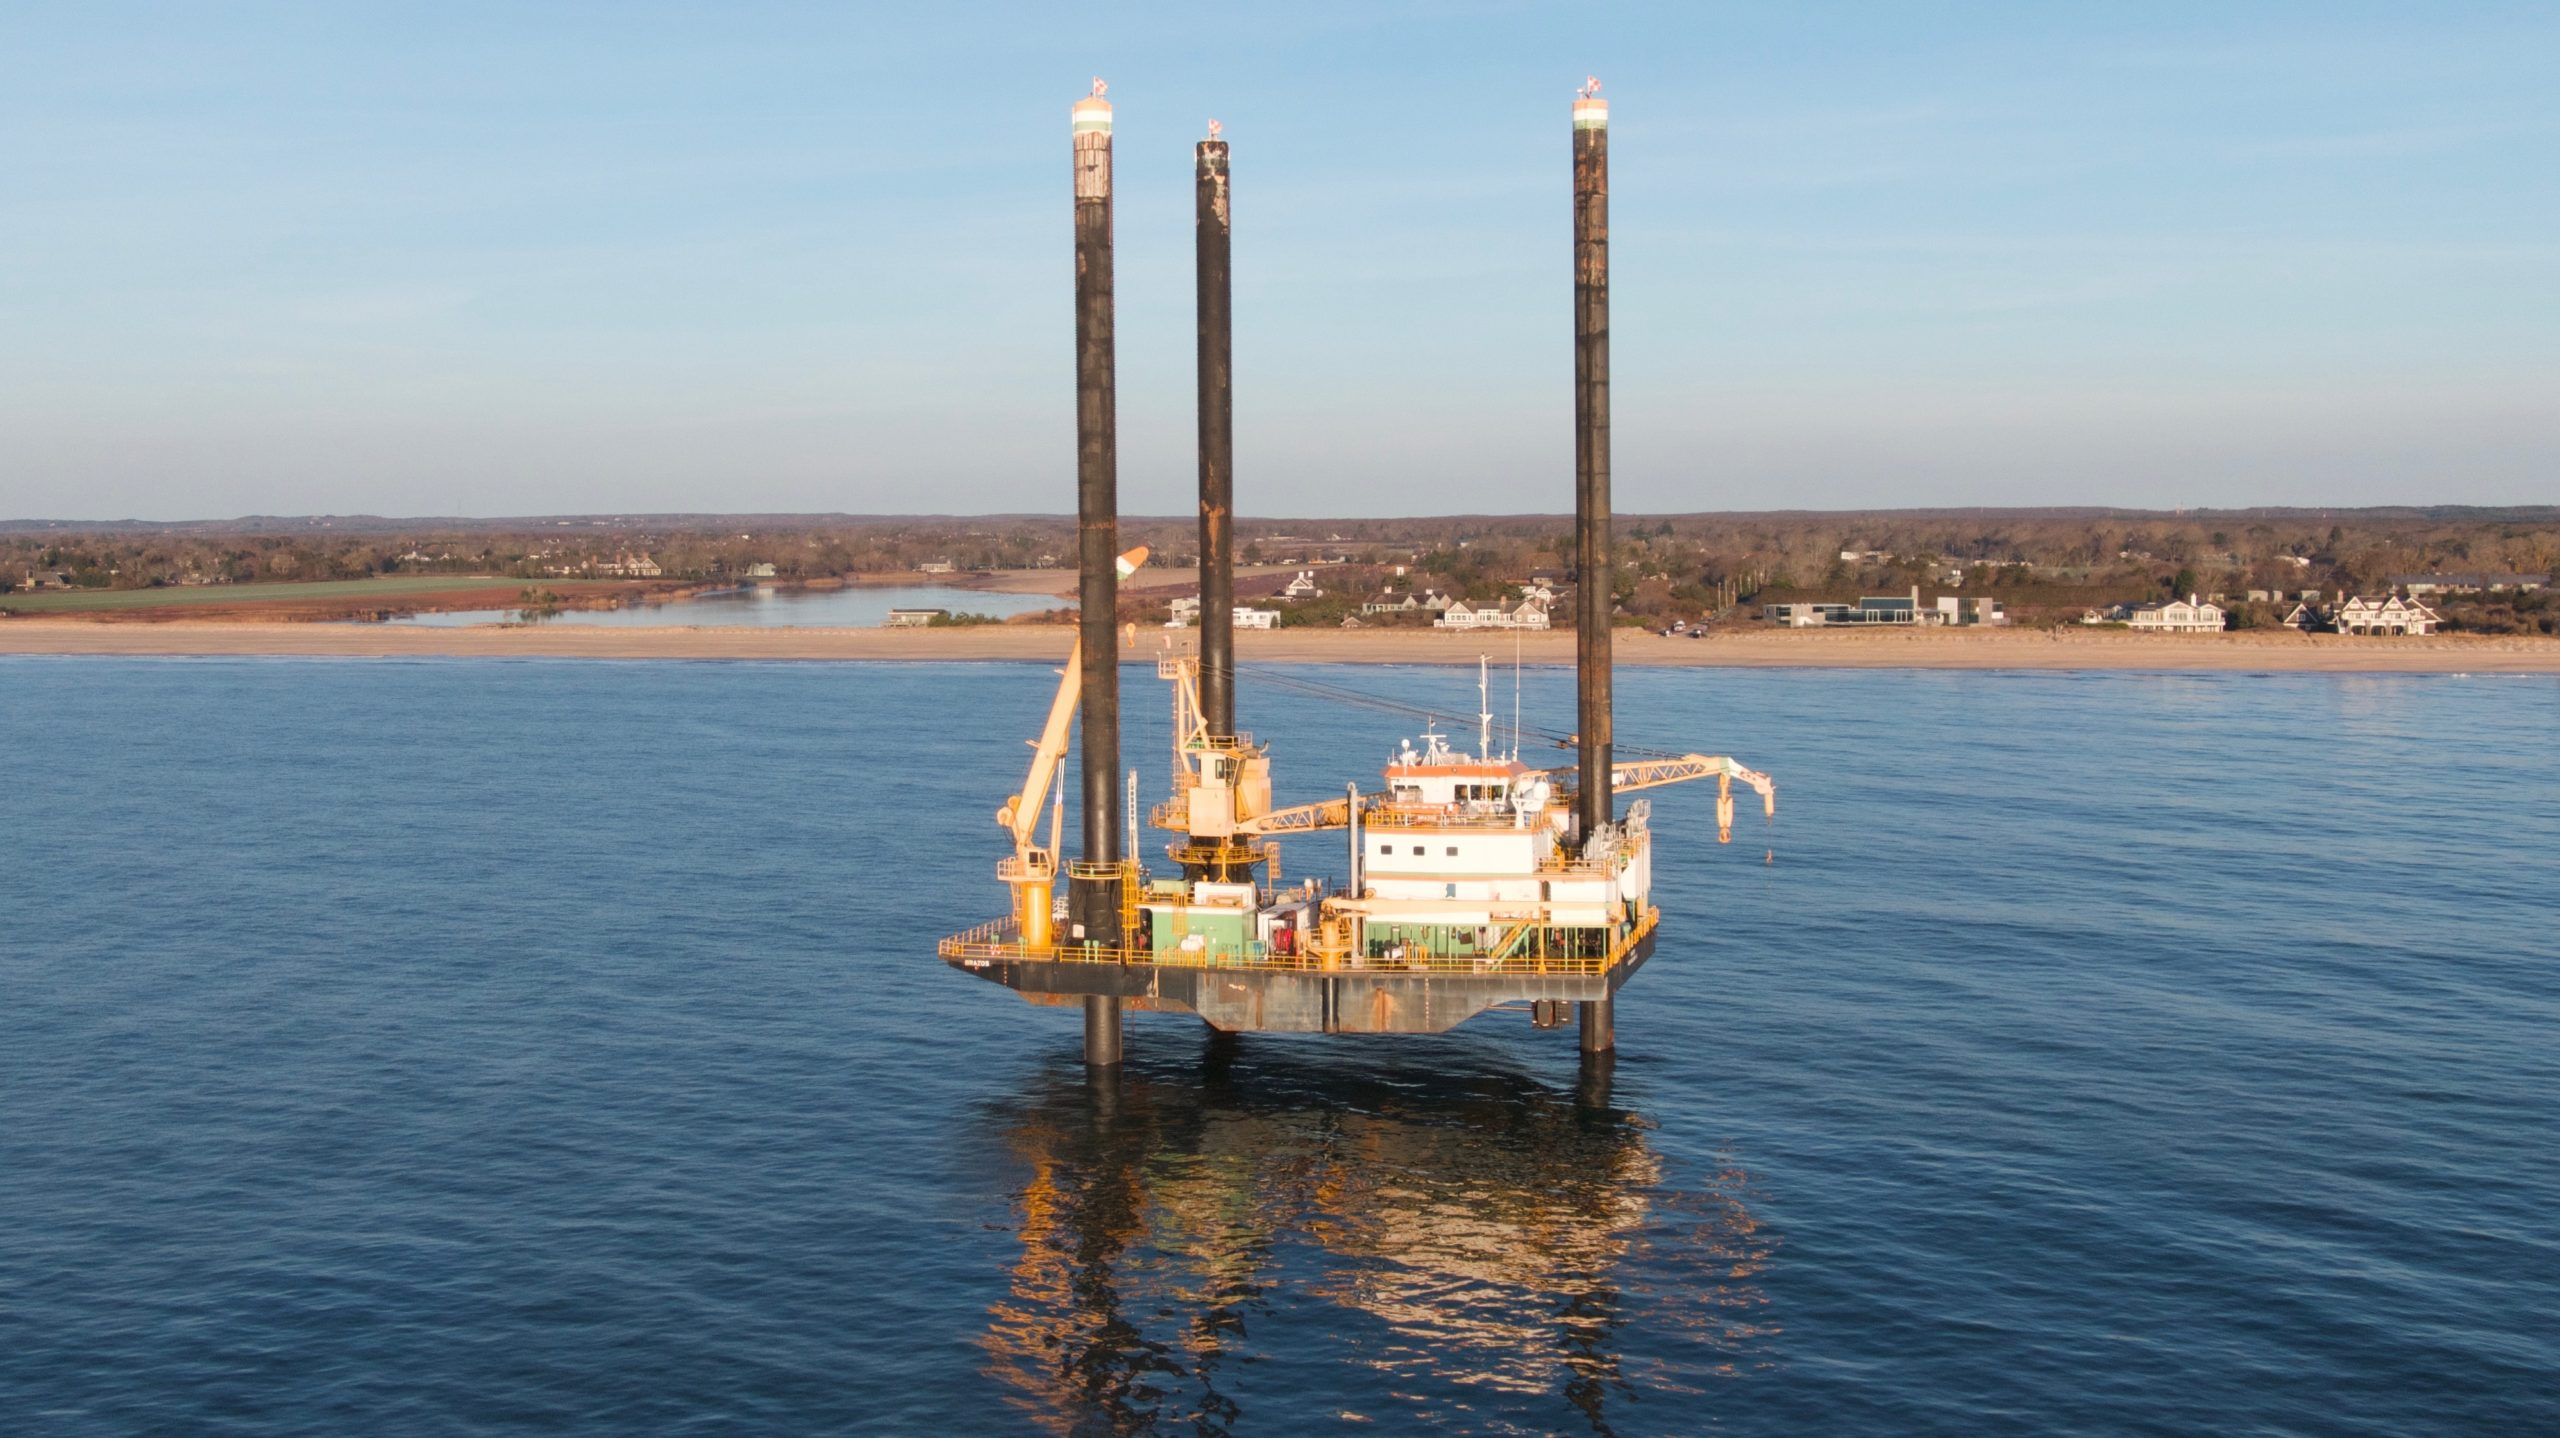 The barge, which can jack itself above the ocean's waves is being used to conduct survey drilling of the seafloor off Wainscott as part of the preparations for the installation of the South Fork Wind Farm power cable.